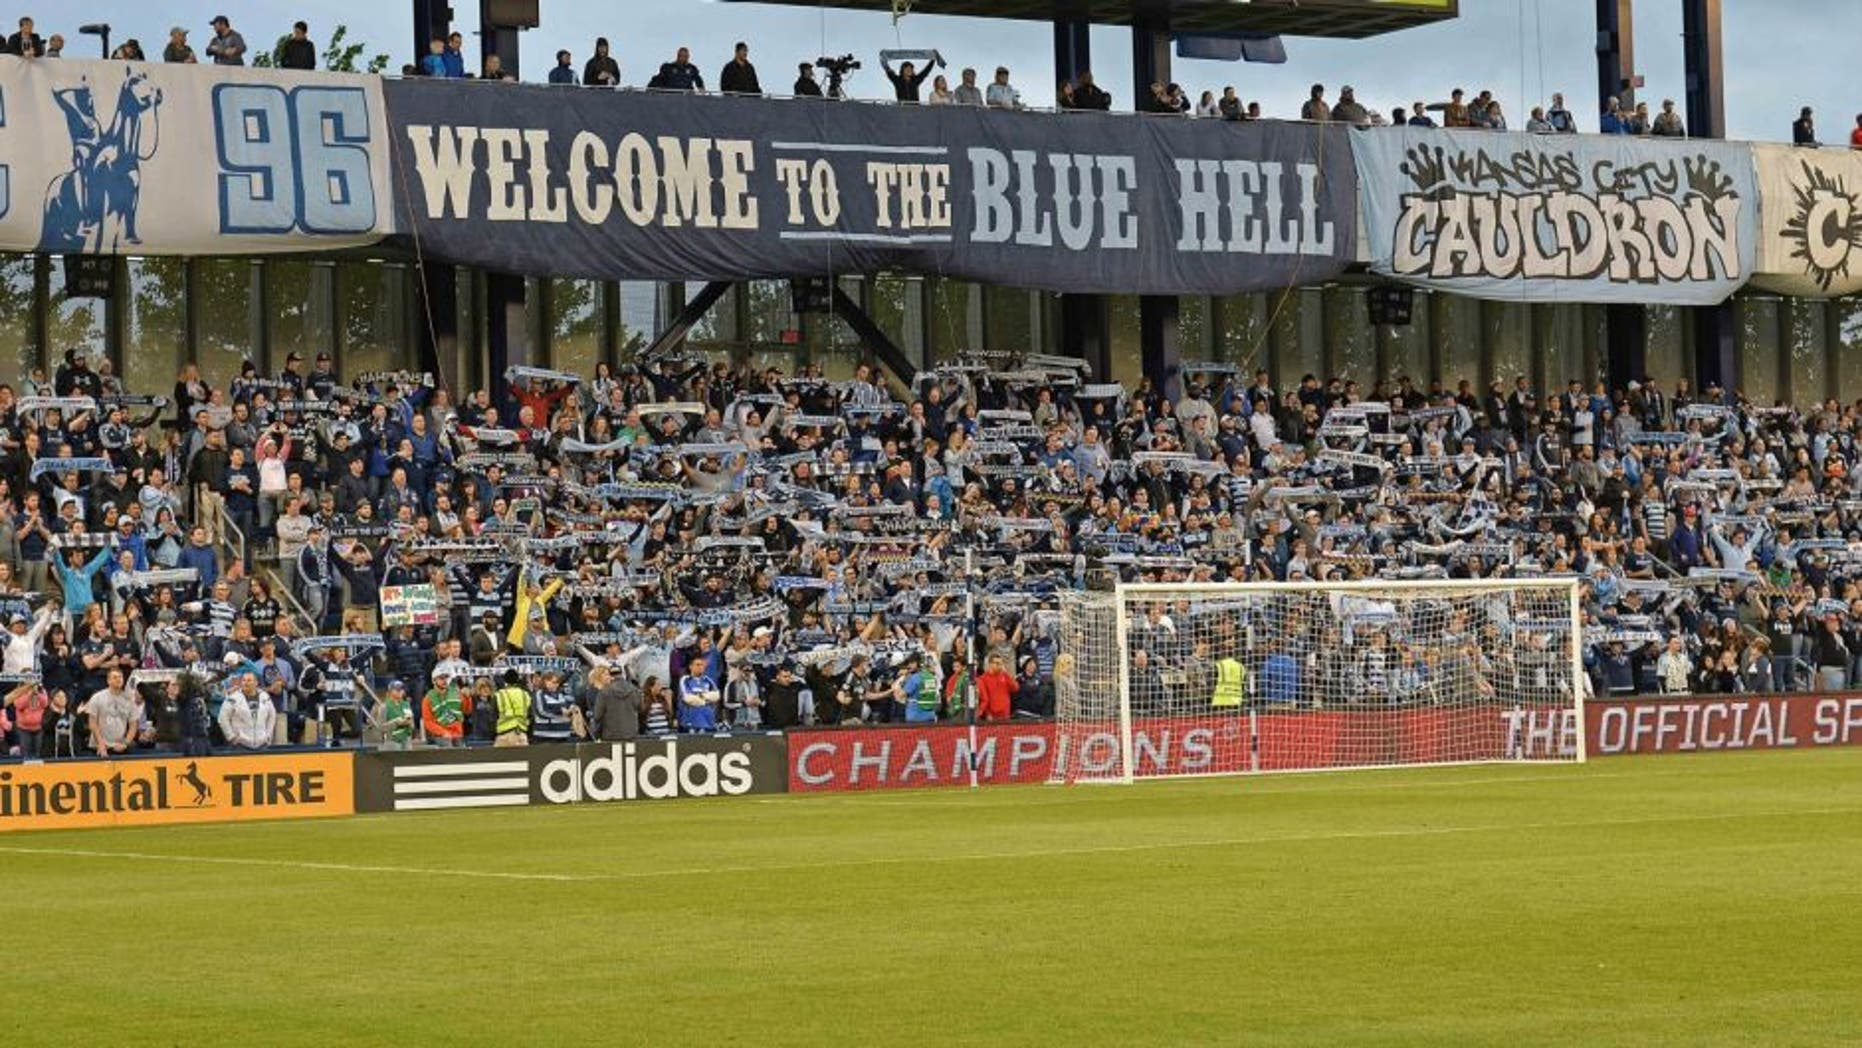 May 1, 2016; Kansas City, KS, USA; Sporting KC fans react prior to the game against the LA Galaxy at Children's Mercy Park. Mandatory Credit: Peter G. Aiken-USA TODAY Sports